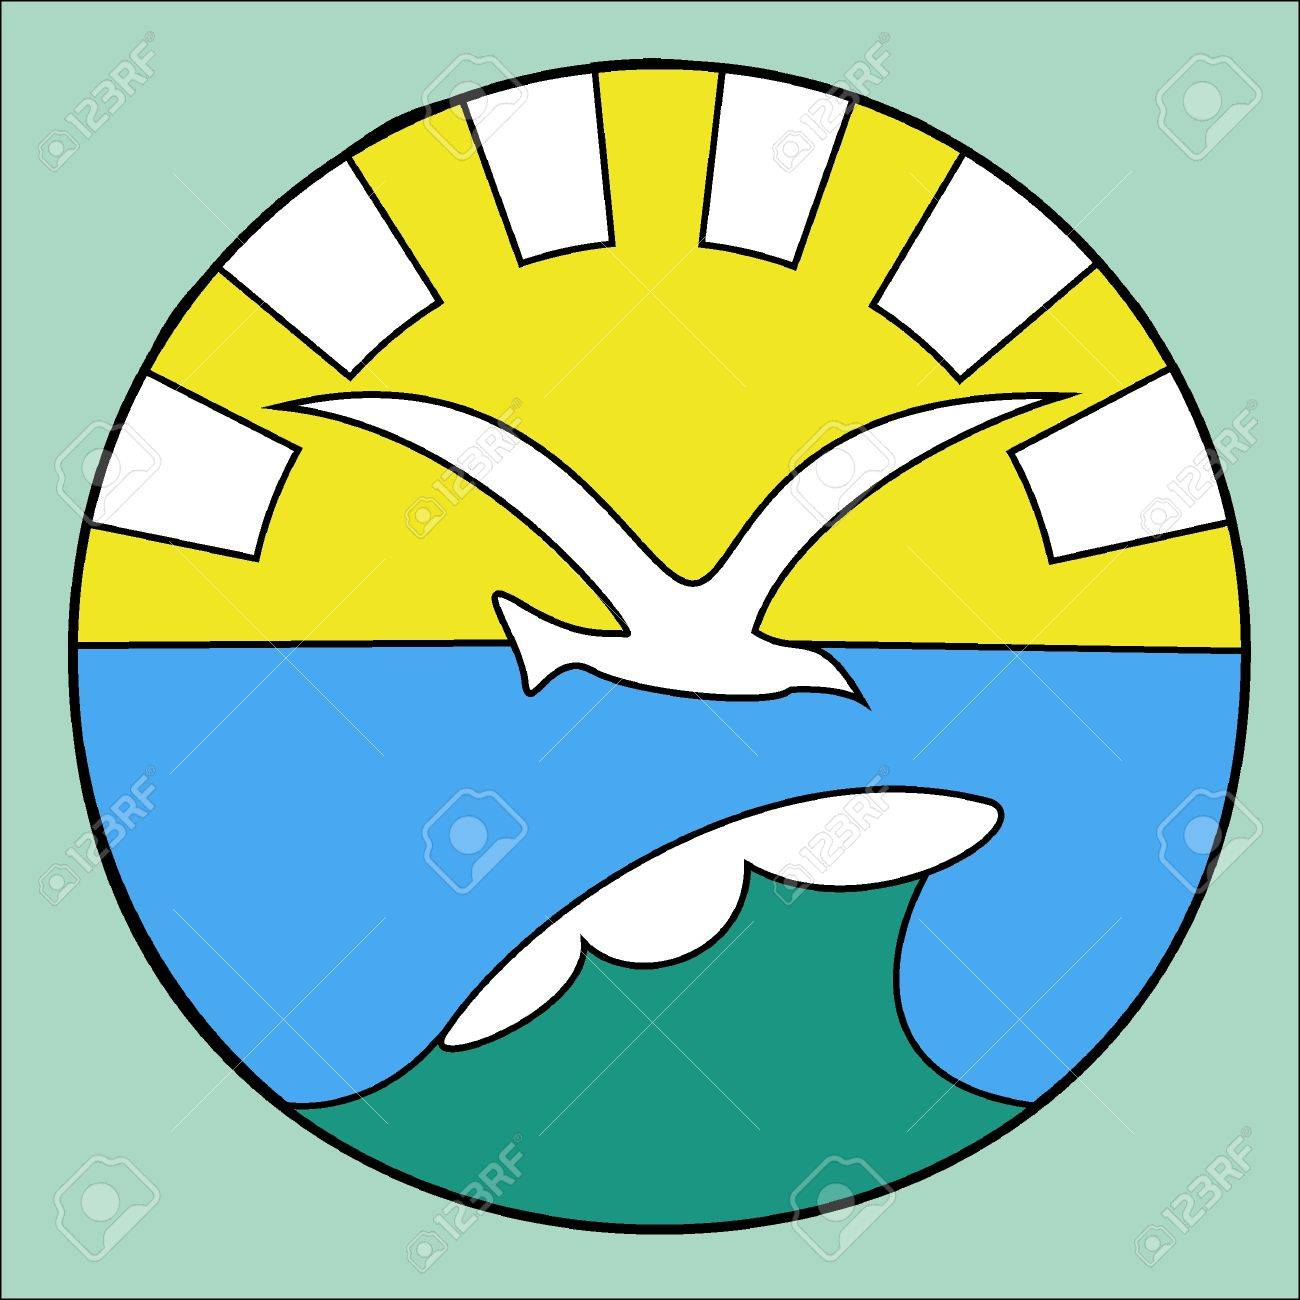 Symbol Of A Seagull Over A Sea Wave Against A Rising Sun Royalty